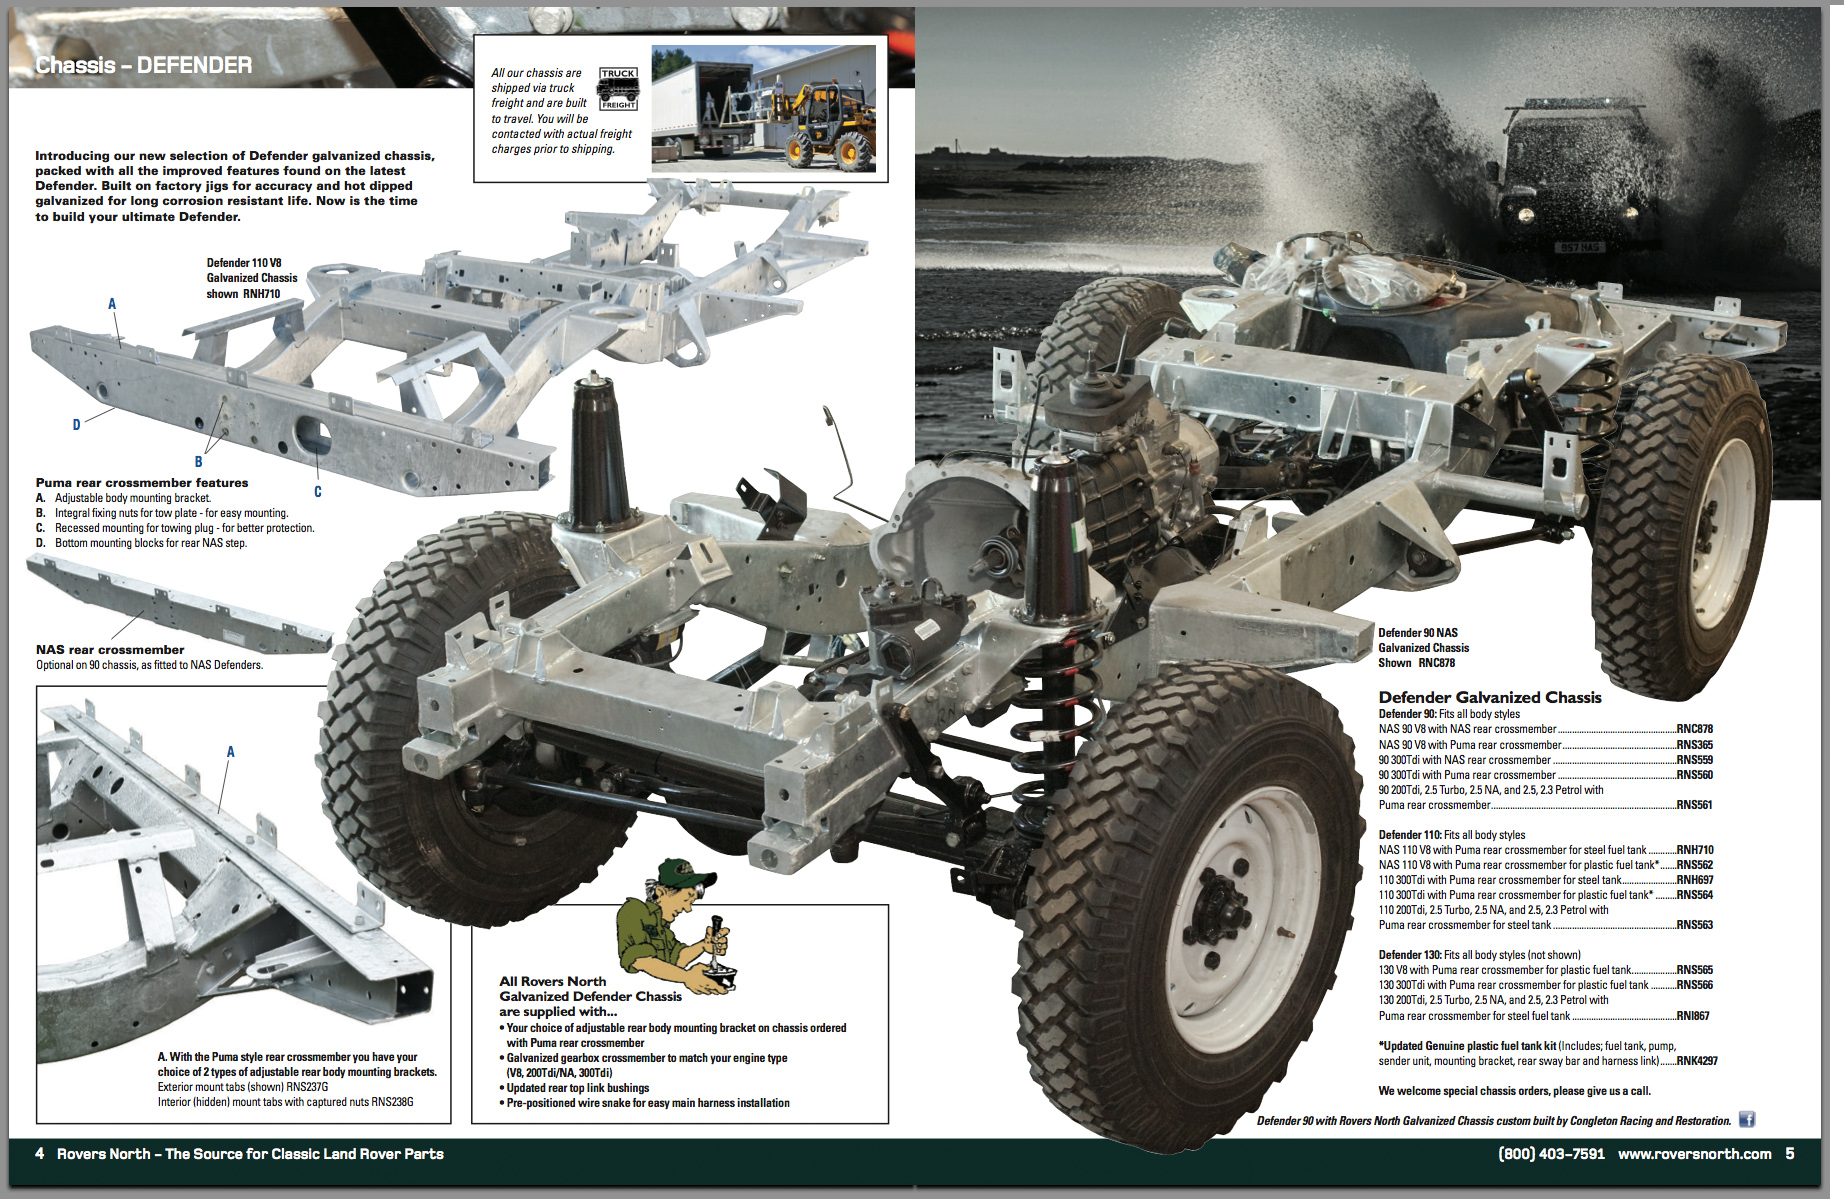 1998 Land Rover Discovery Engine Diagram Content Resource Of 2004 Range Defender Chassis Frame Rovers North Classic 2003 Cooling System Breakdown